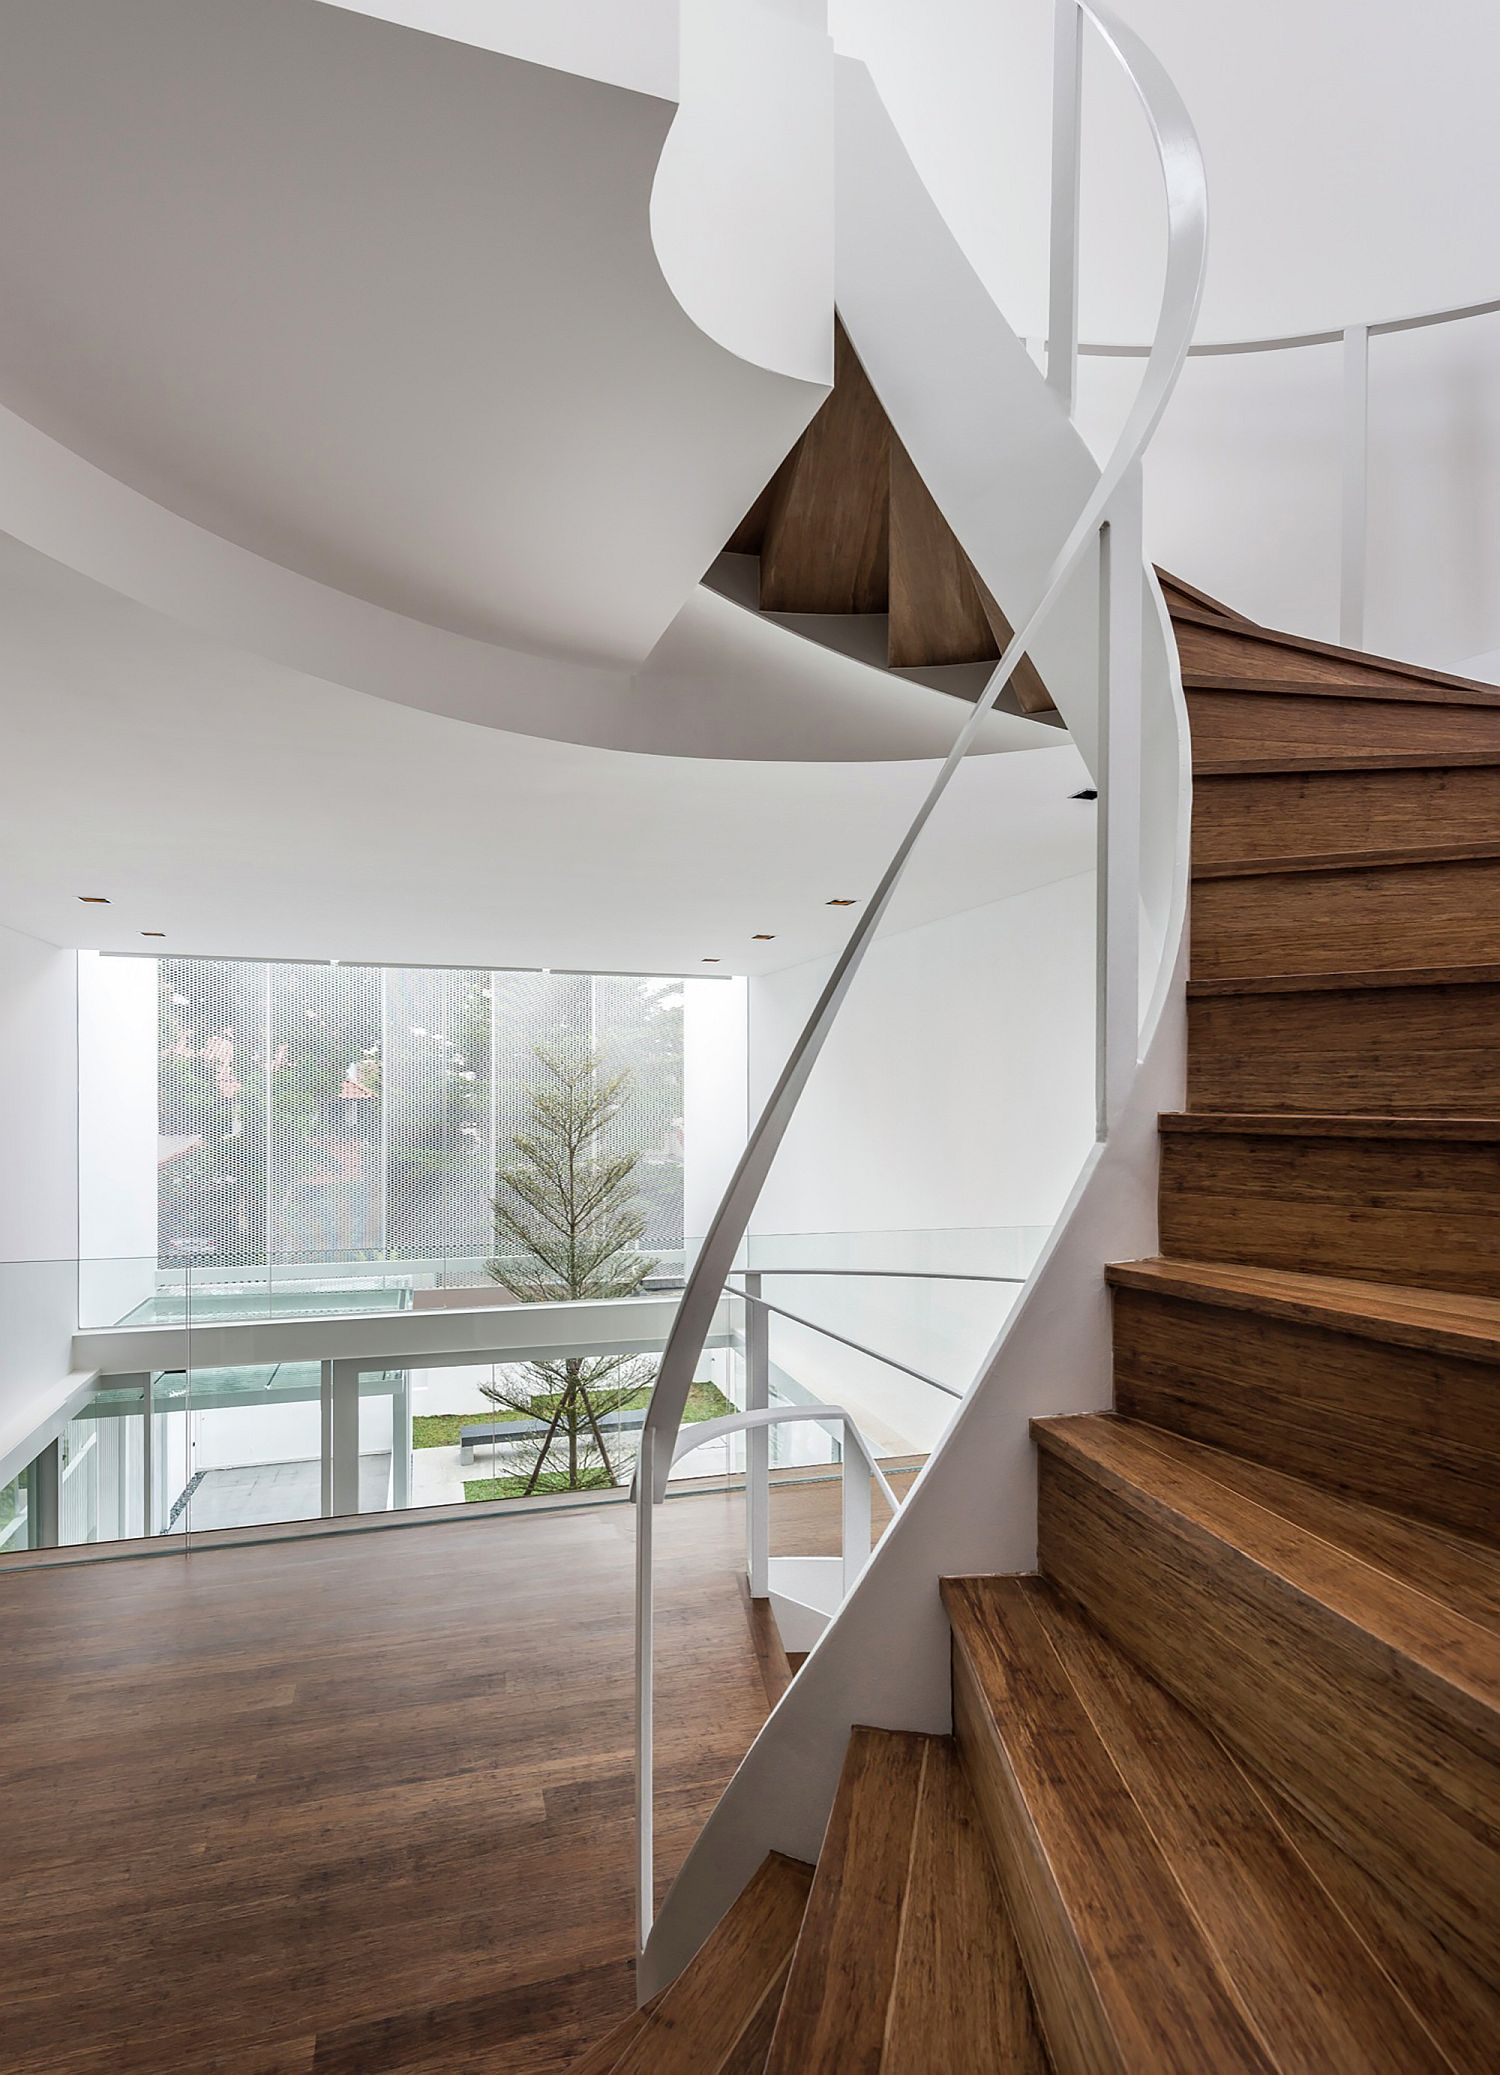 Awesome contemporary wooden staircase is the central focal point of the house